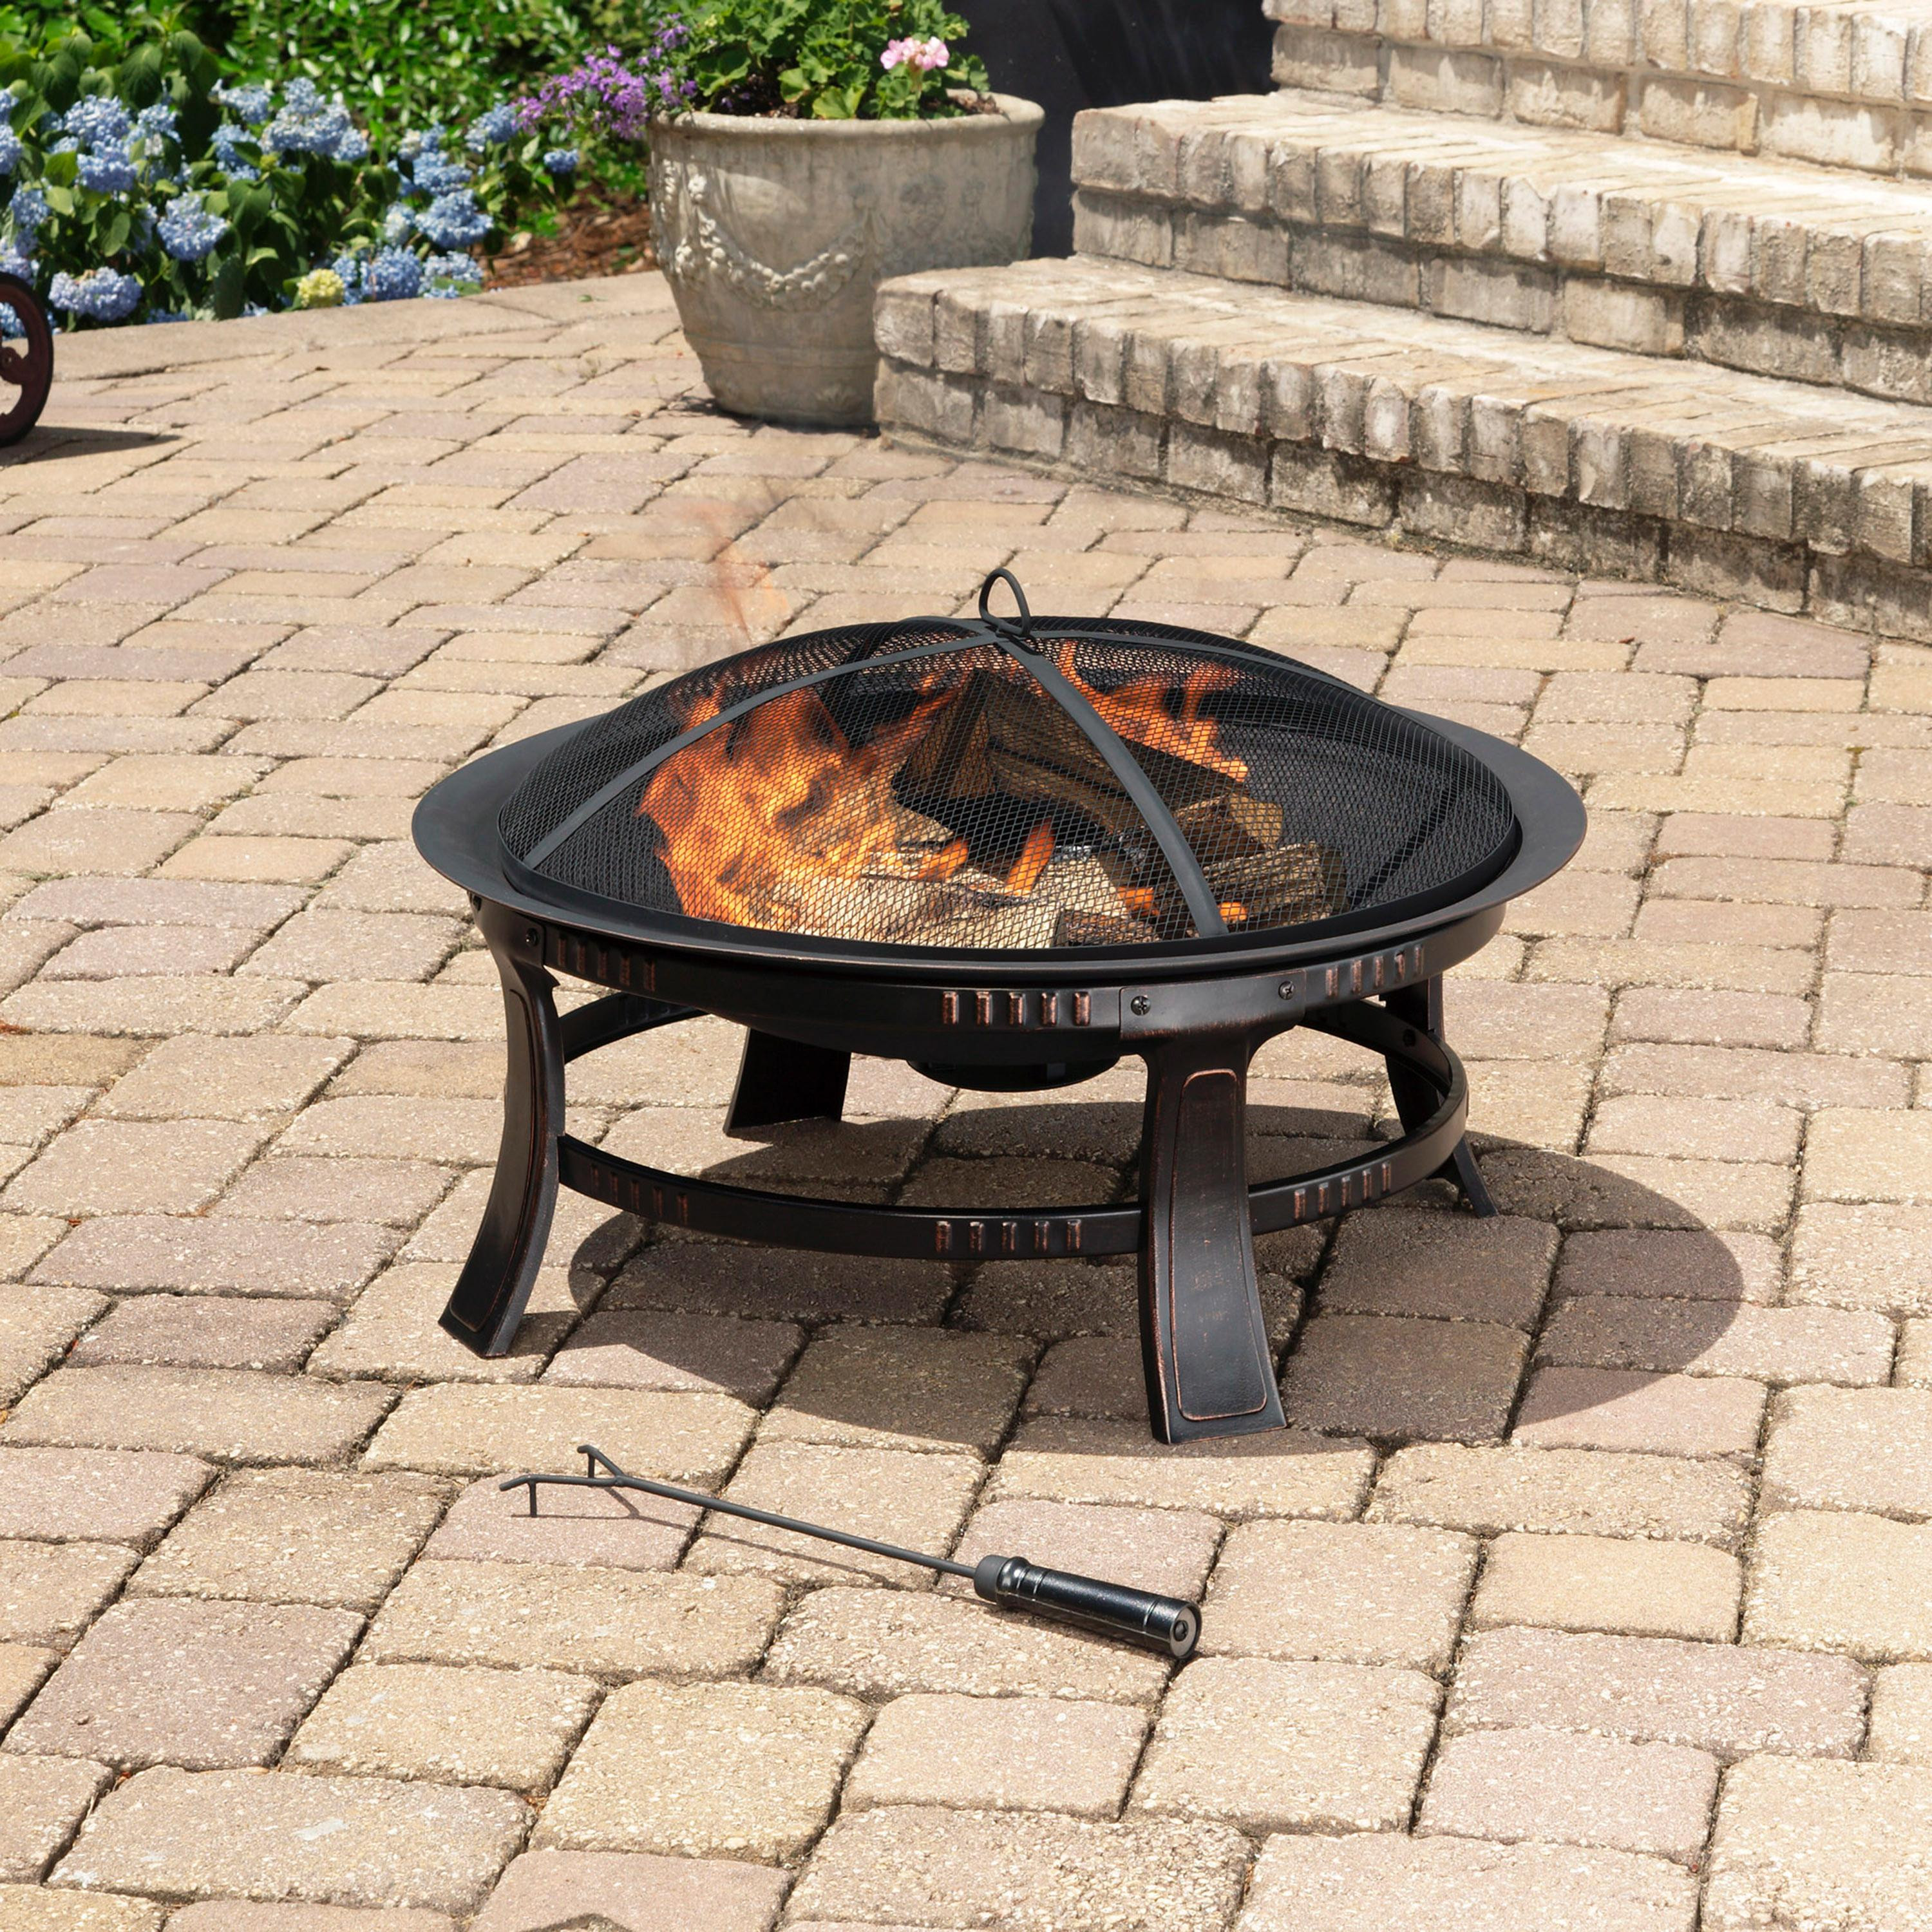 Best ideas about Patio Fire Pit . Save or Pin Amazon Brant Wood Burning Circular Fire Pit in Now.